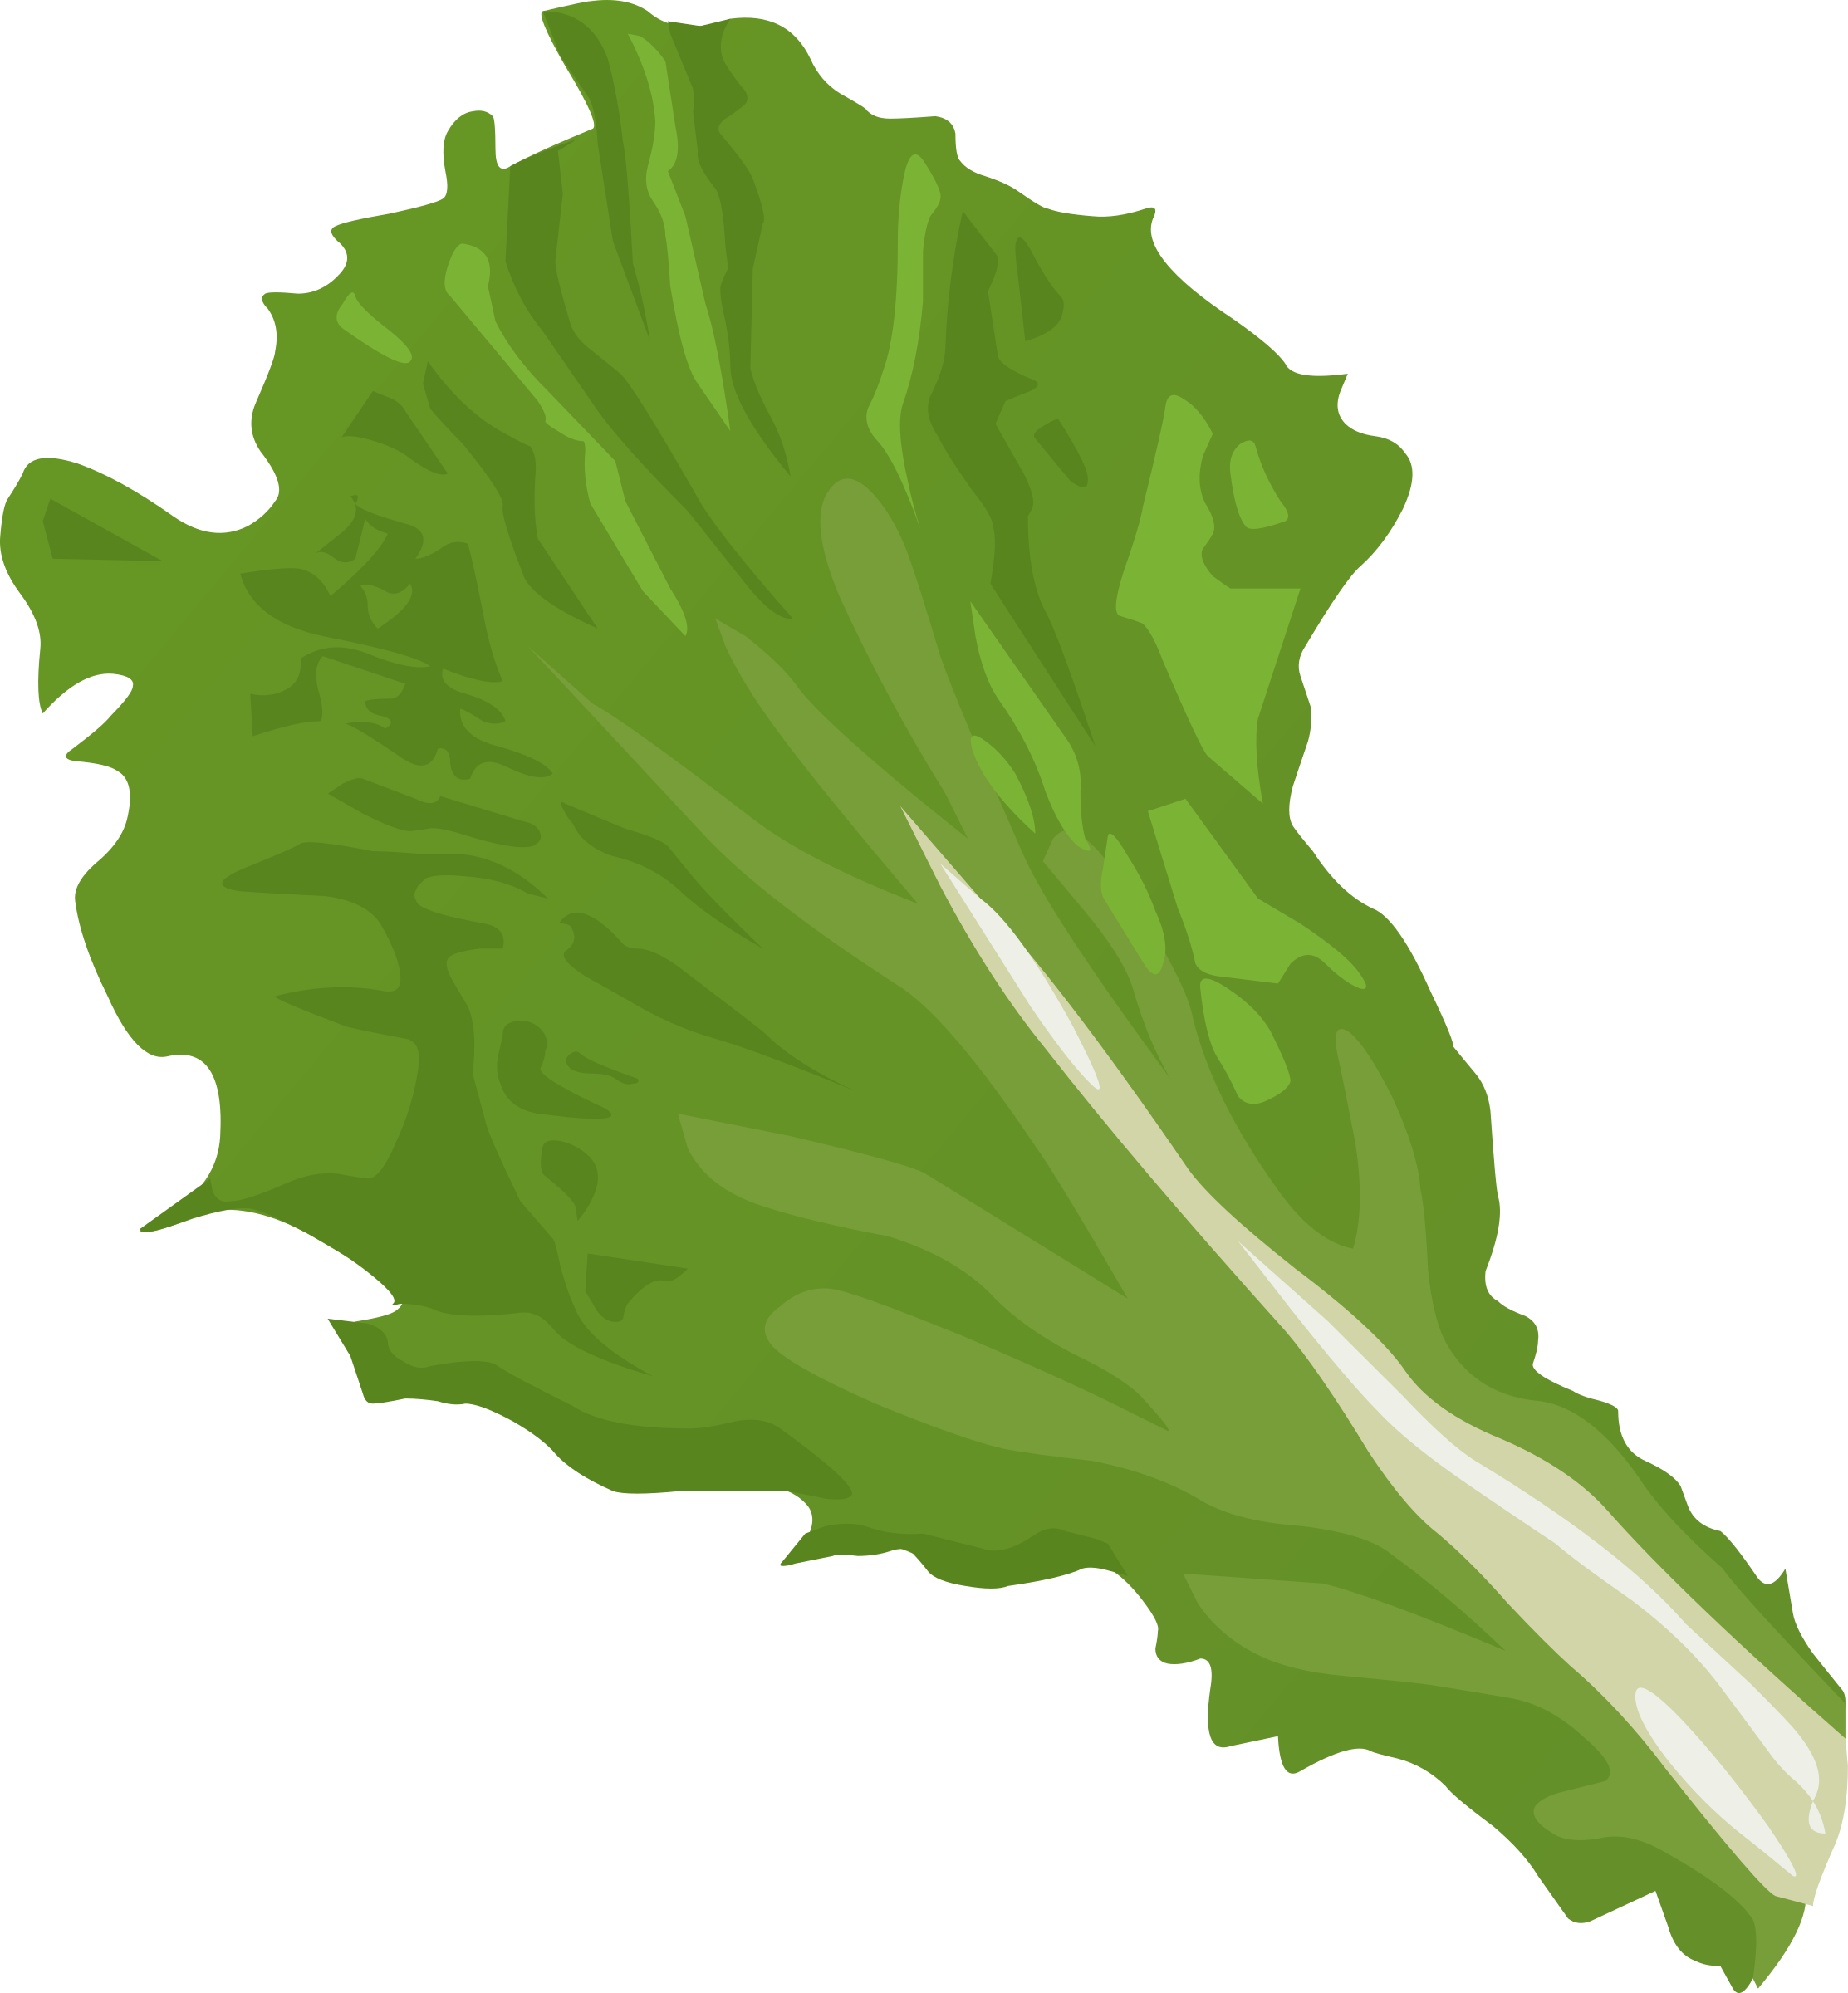 Salad clipart animated. Lettuce at getdrawings com